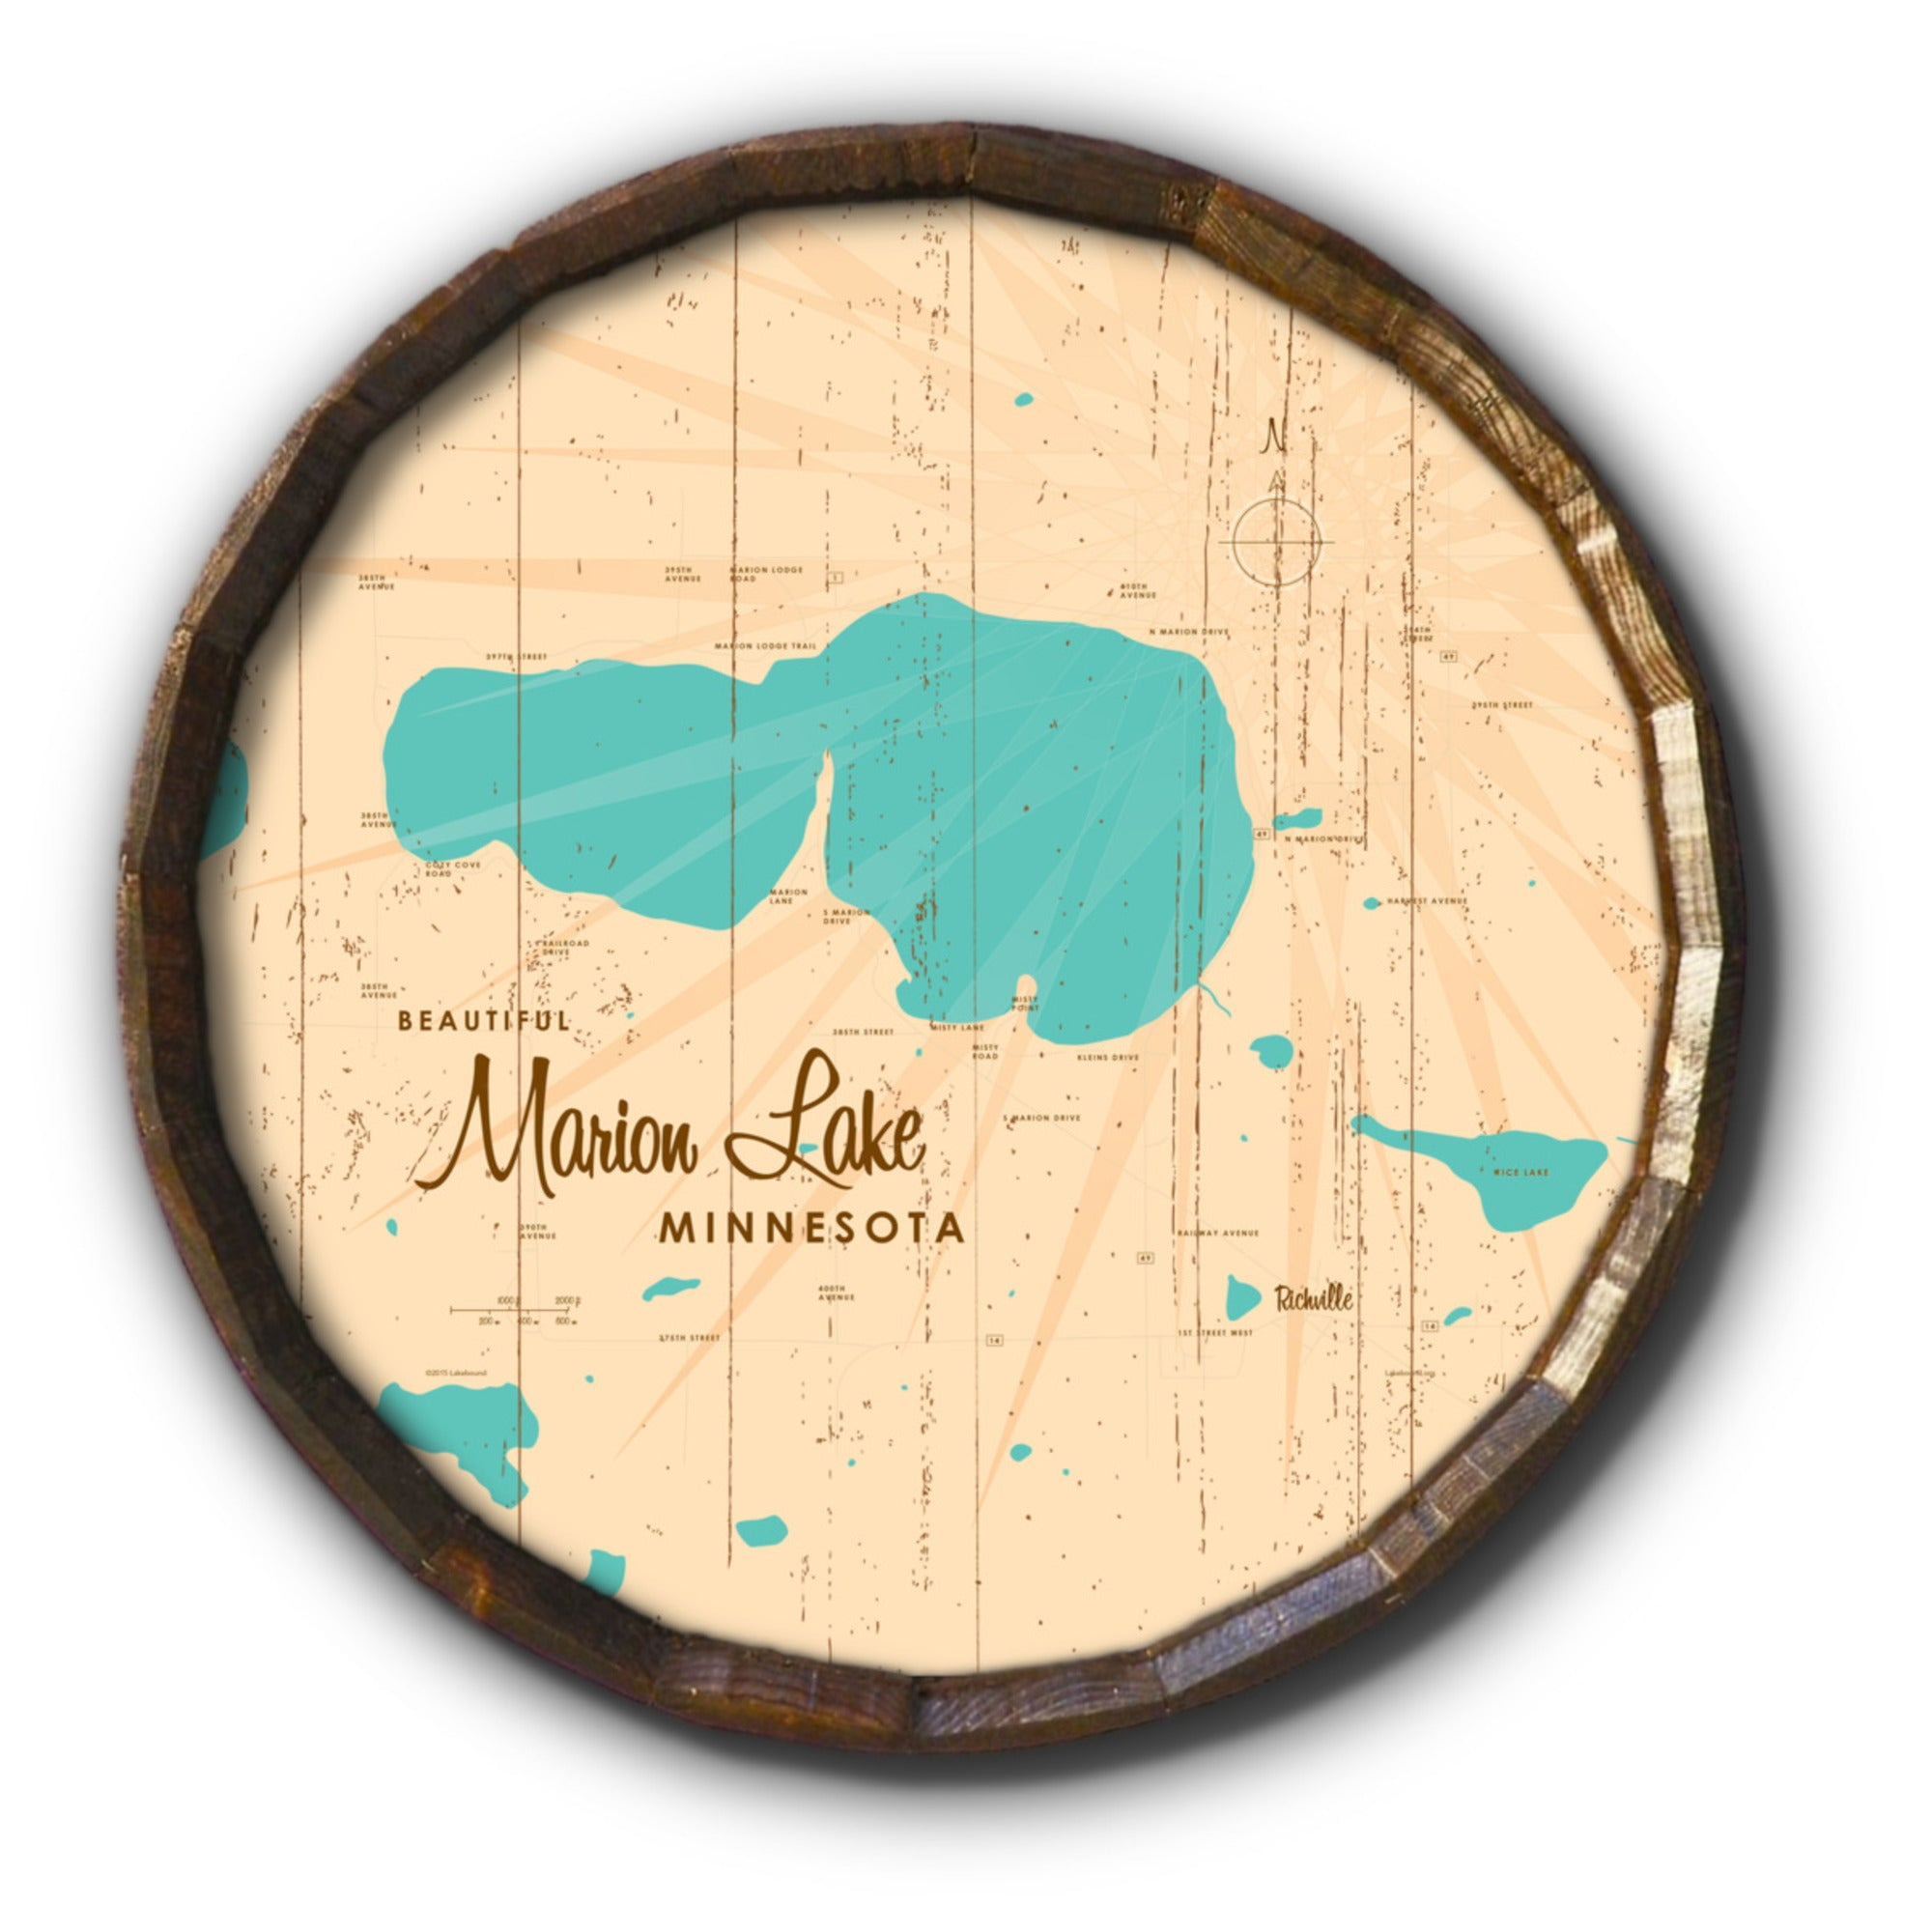 Marion Lake Minnesota, Rustic Barrel End Map Art